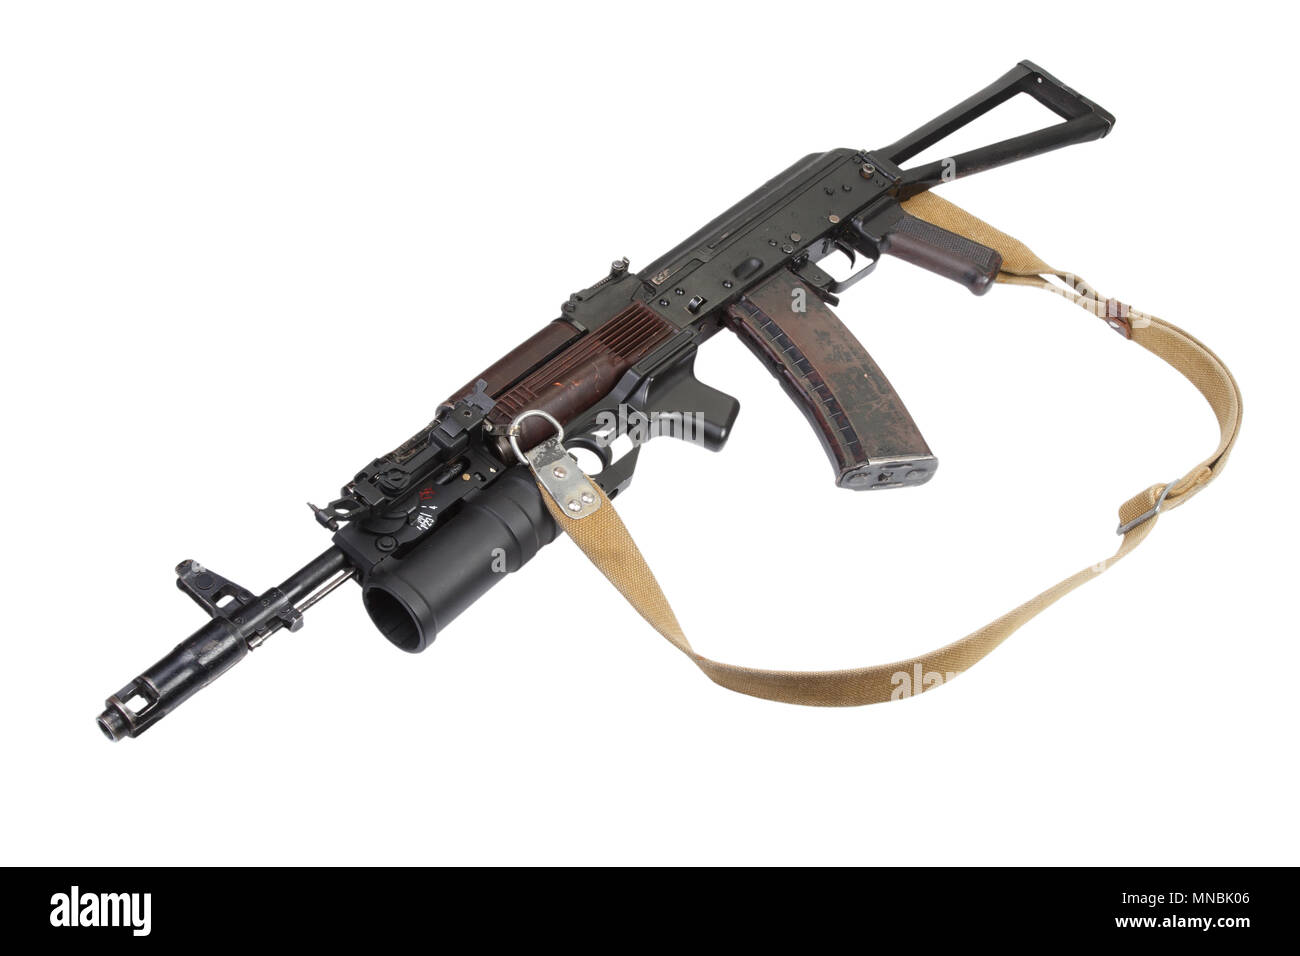 Kalashnikov AK with GP-25 grenade launcher isolated on white - Stock Image